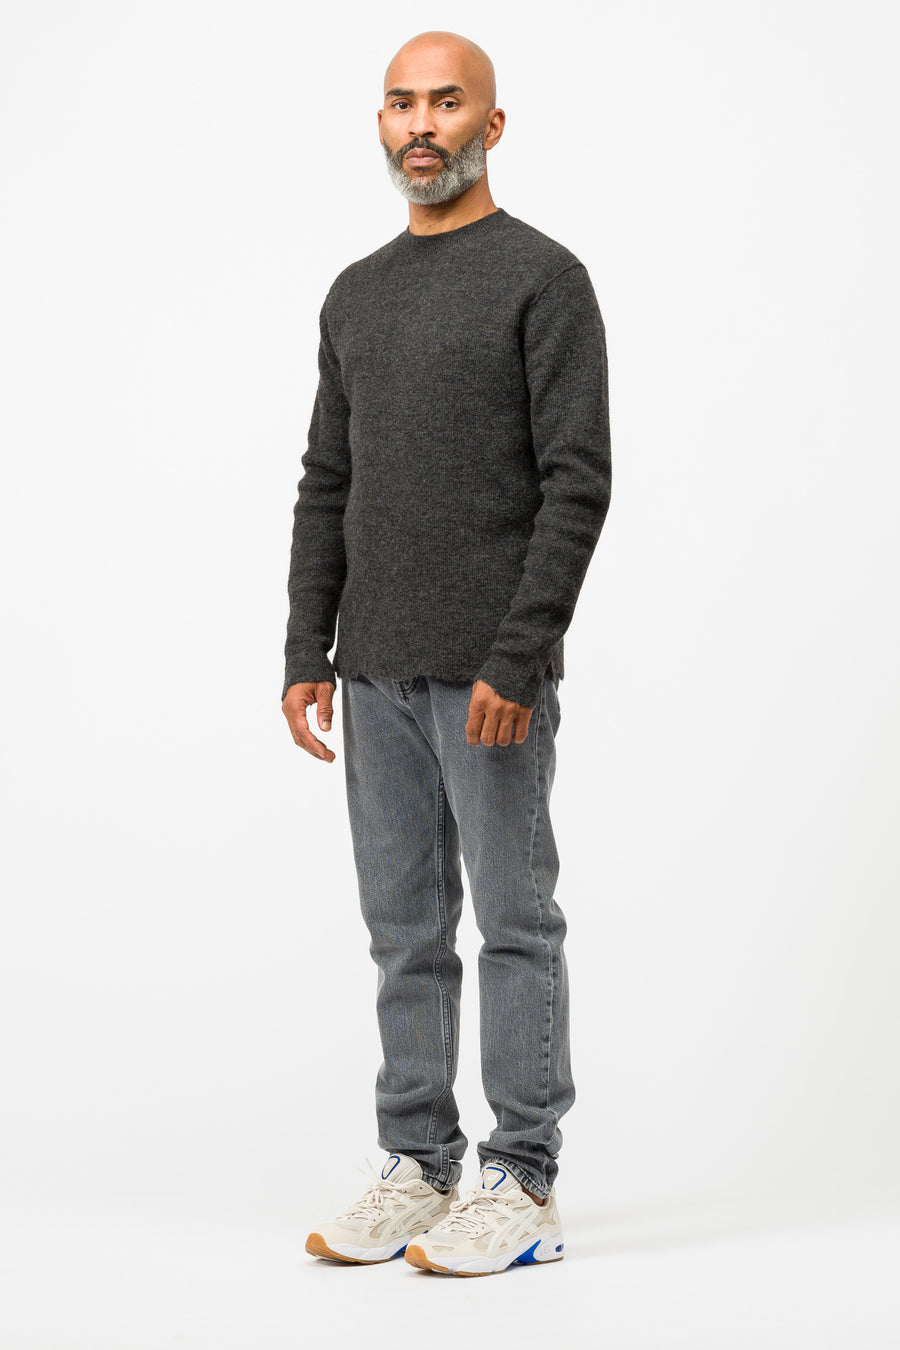 Acne Studios Kamden Wool in Medium Grey Mélange - Notre